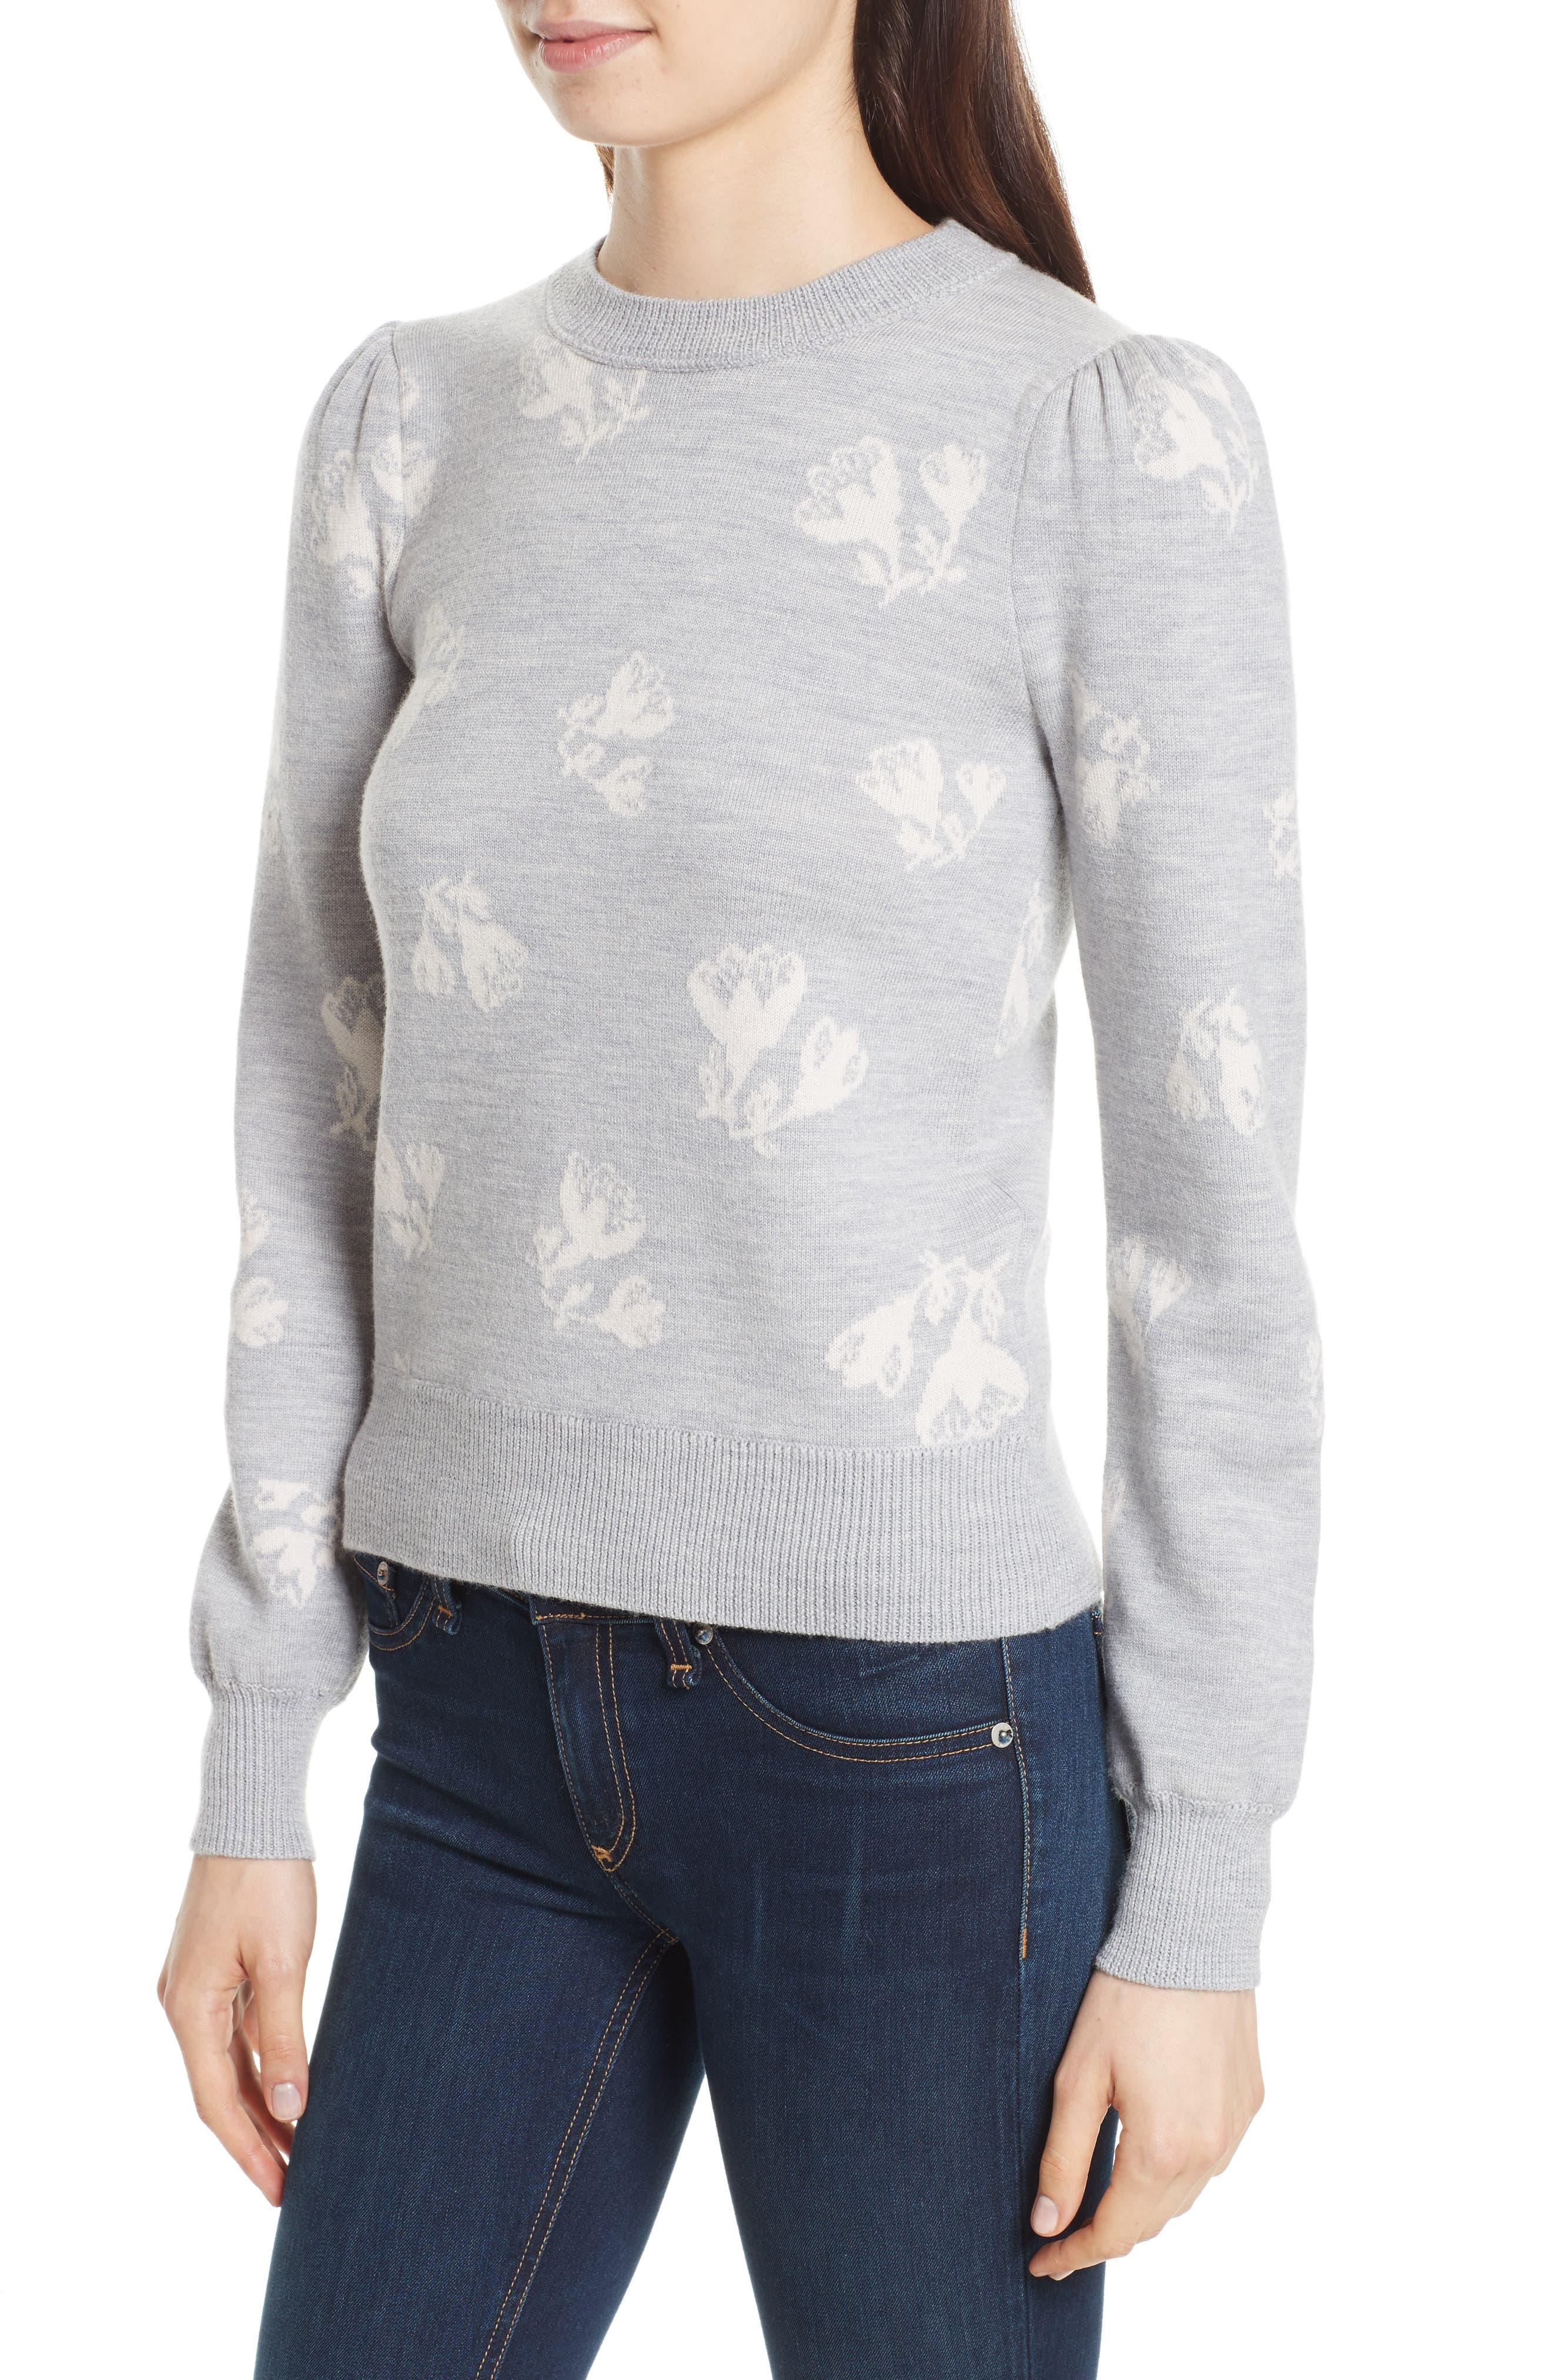 Floral Jacquard Sweater,                             Alternate thumbnail 4, color,                             Grey Melange